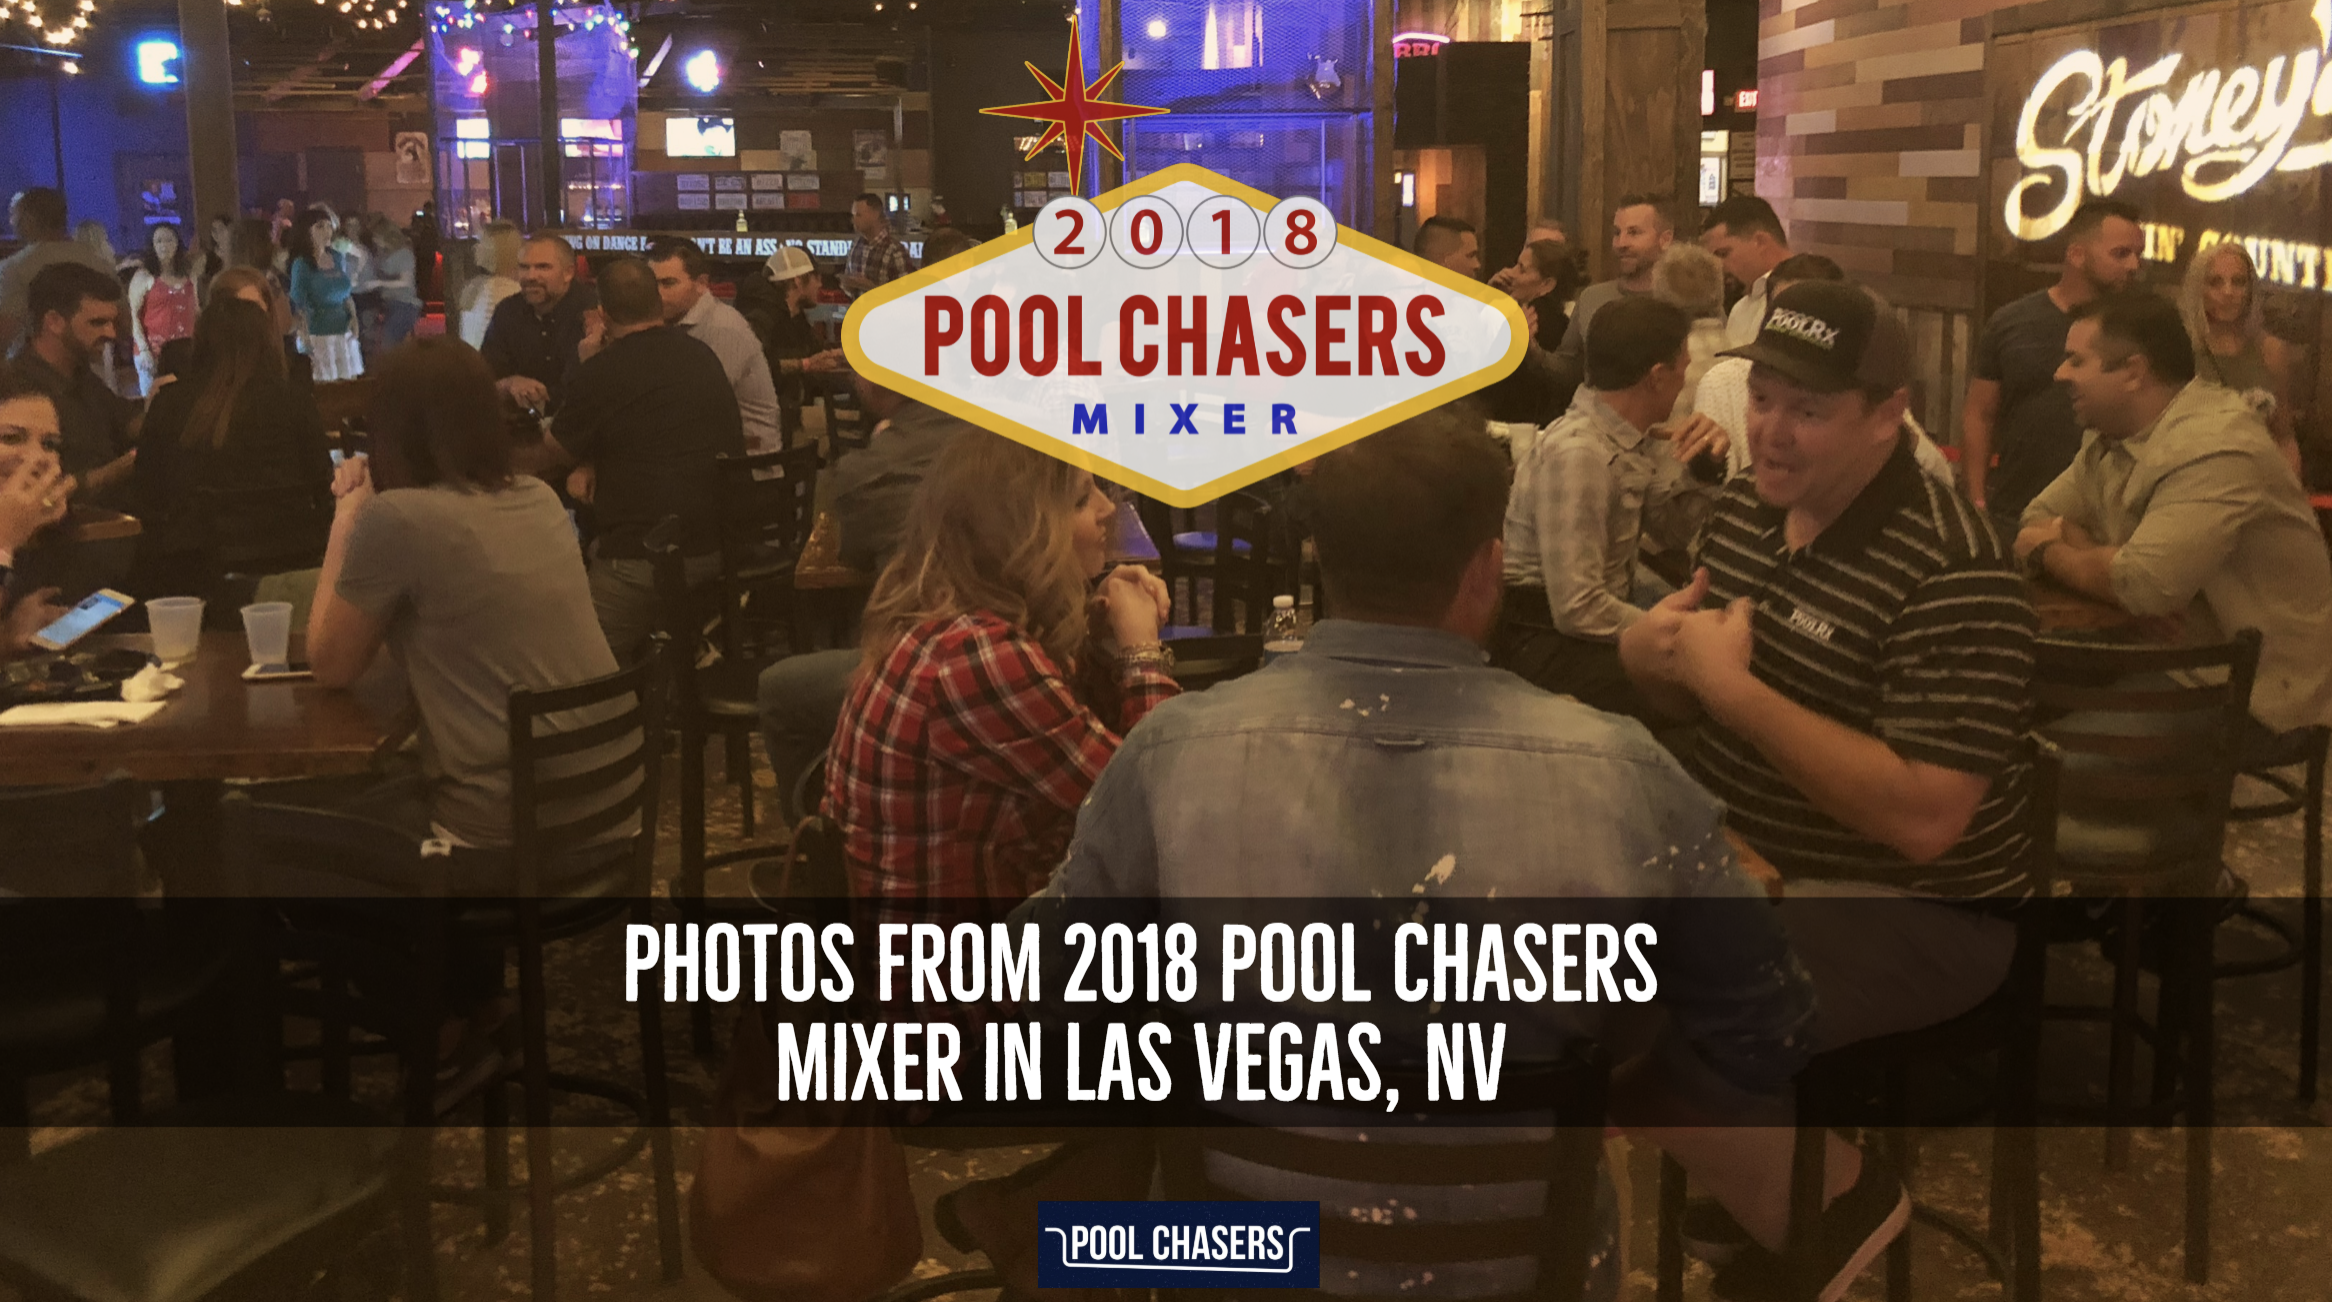 Pool Chasers Mixer Las Vegas.png